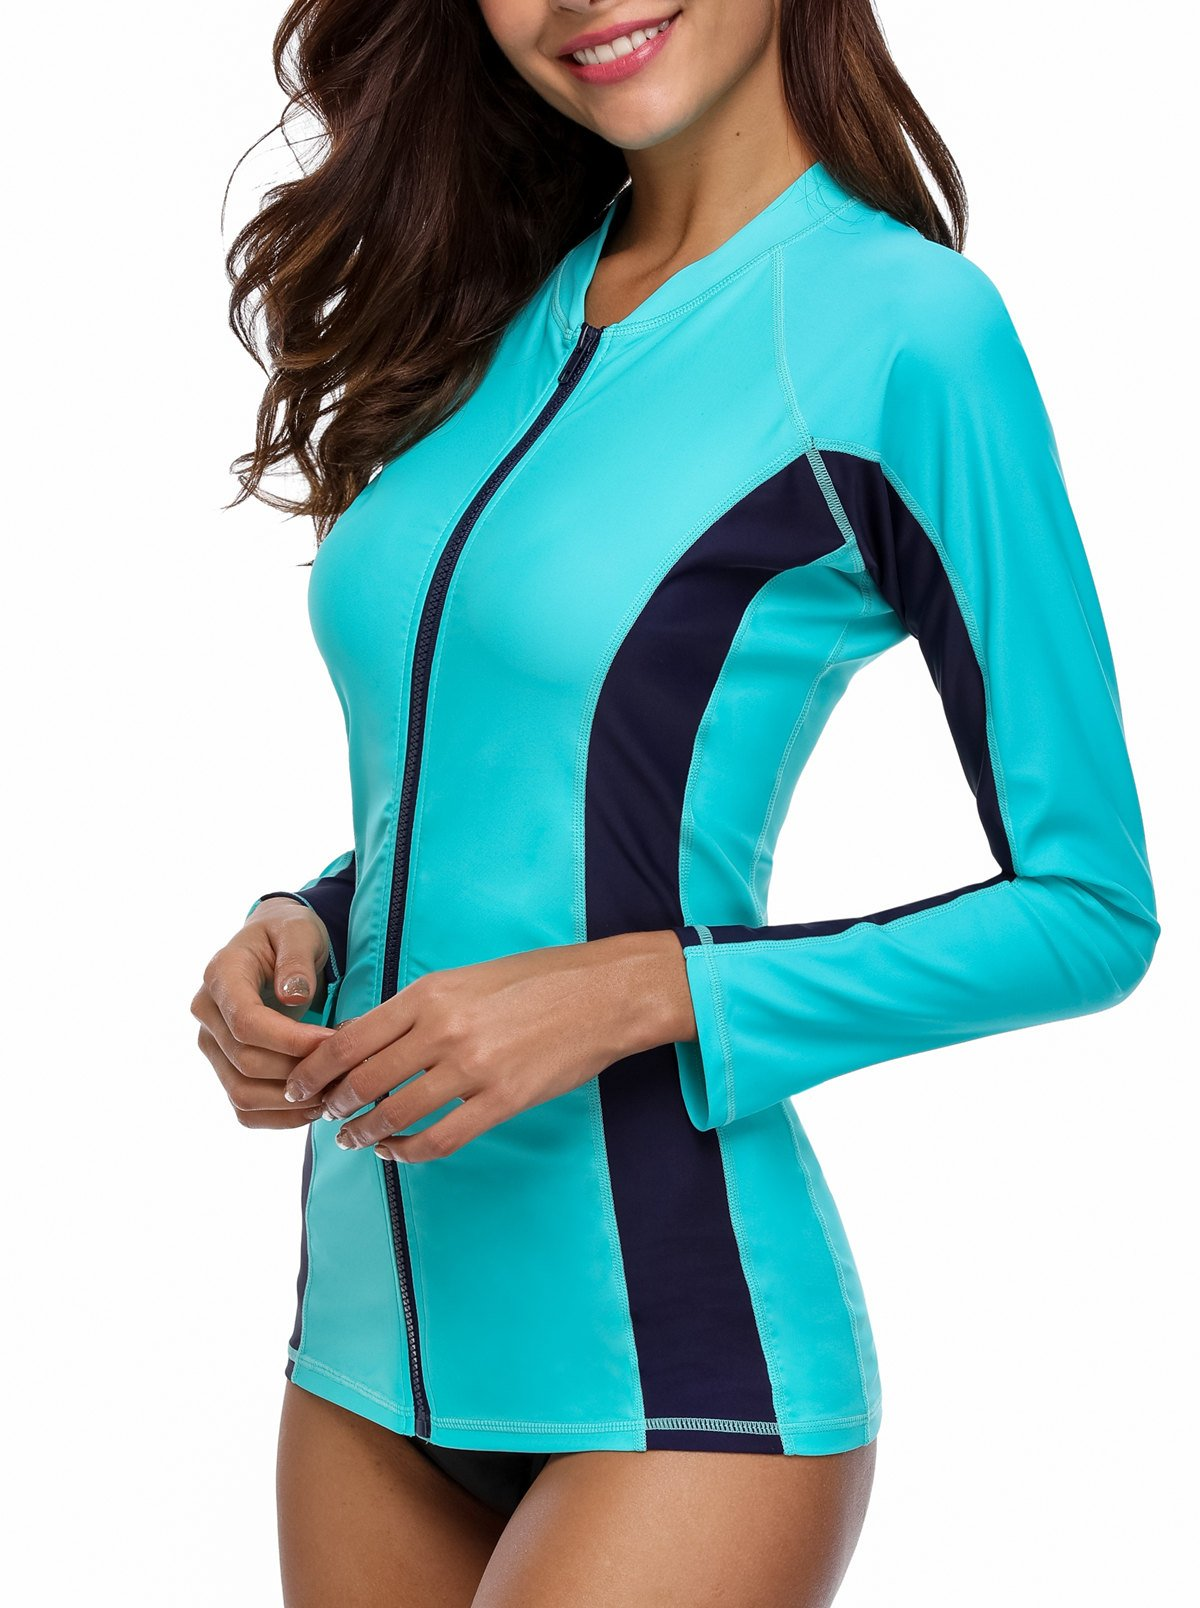 ATTRACO Long Sleeve Sporty Swim Shirt Womens Rashguard Tops Aqua Large by ATTRACO (Image #3)